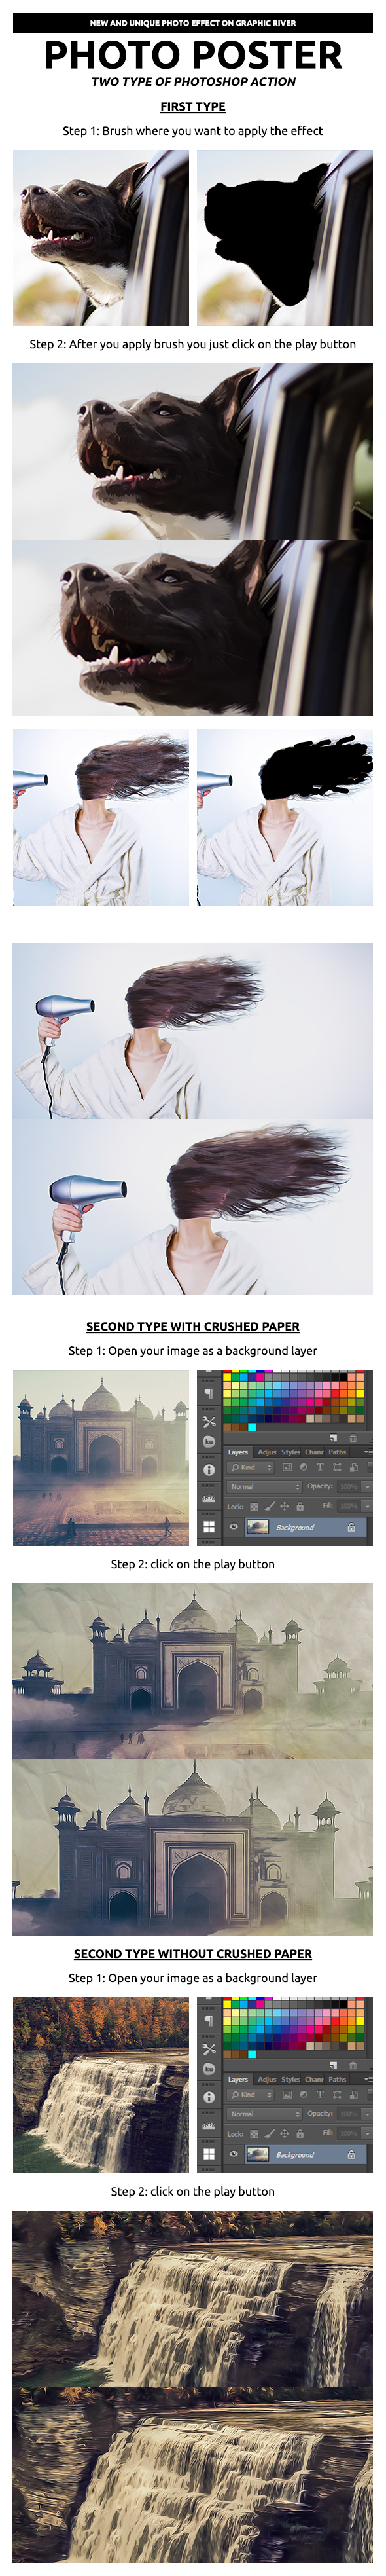 PhotoPoster Photoshop Action - Photo Effects Actions